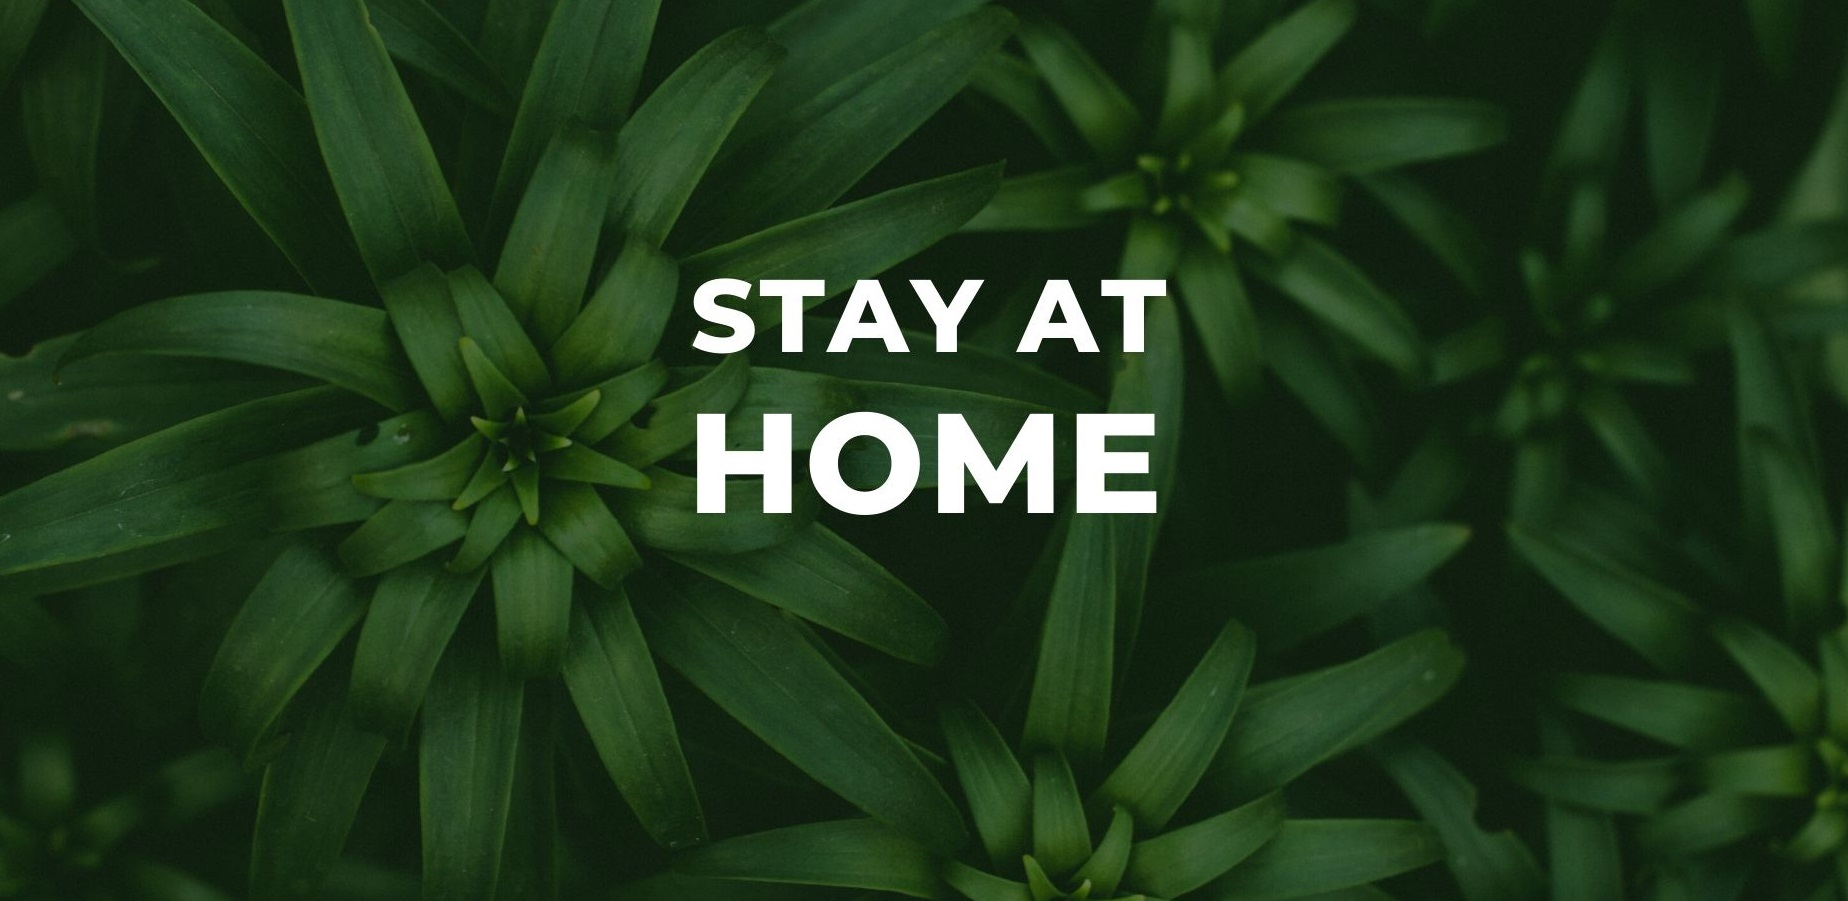 Stay at Home is an Act of Kindness